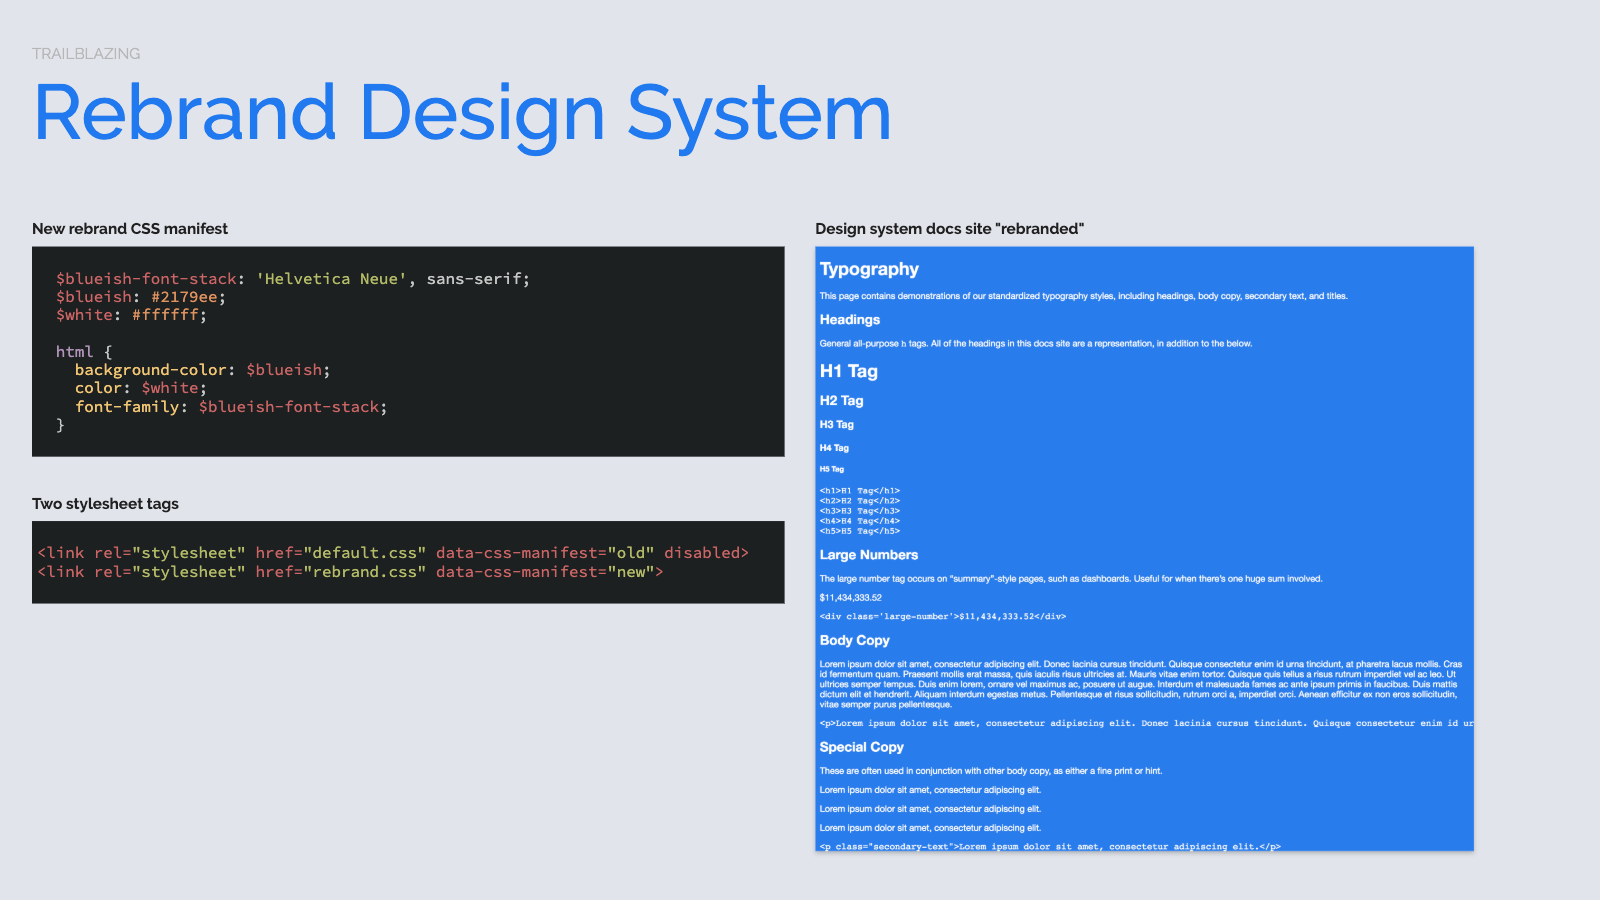 Slide content, Rebrand design system, CSS strategy for multiple stylesheets. Displaying laughably hacky rebrand styles